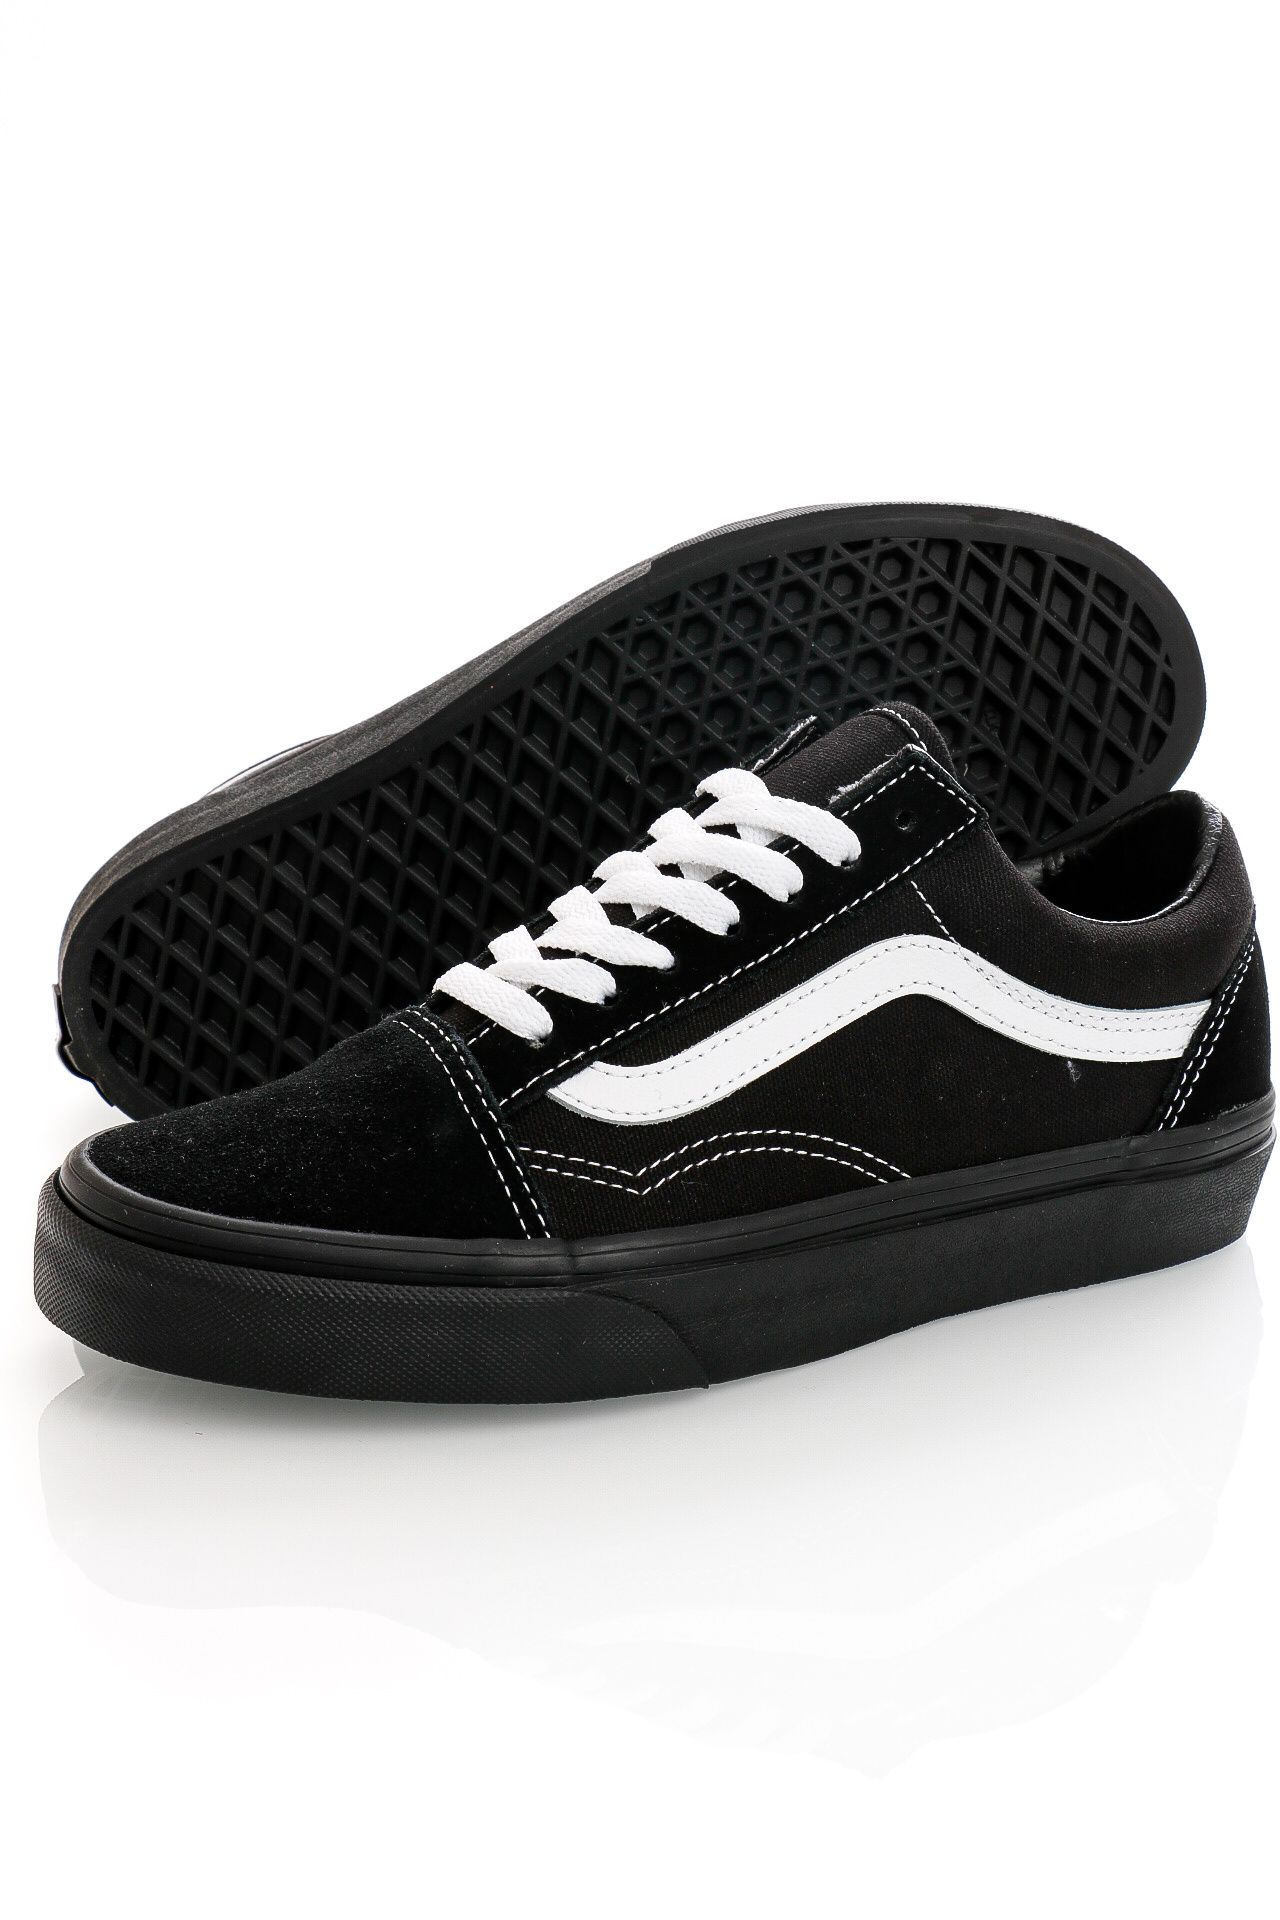 Afbeelding van Vans Sneakers UA Old Skool (SUEDE/CANVAS) Black Black/True Wh VN0A3WKT5WU1